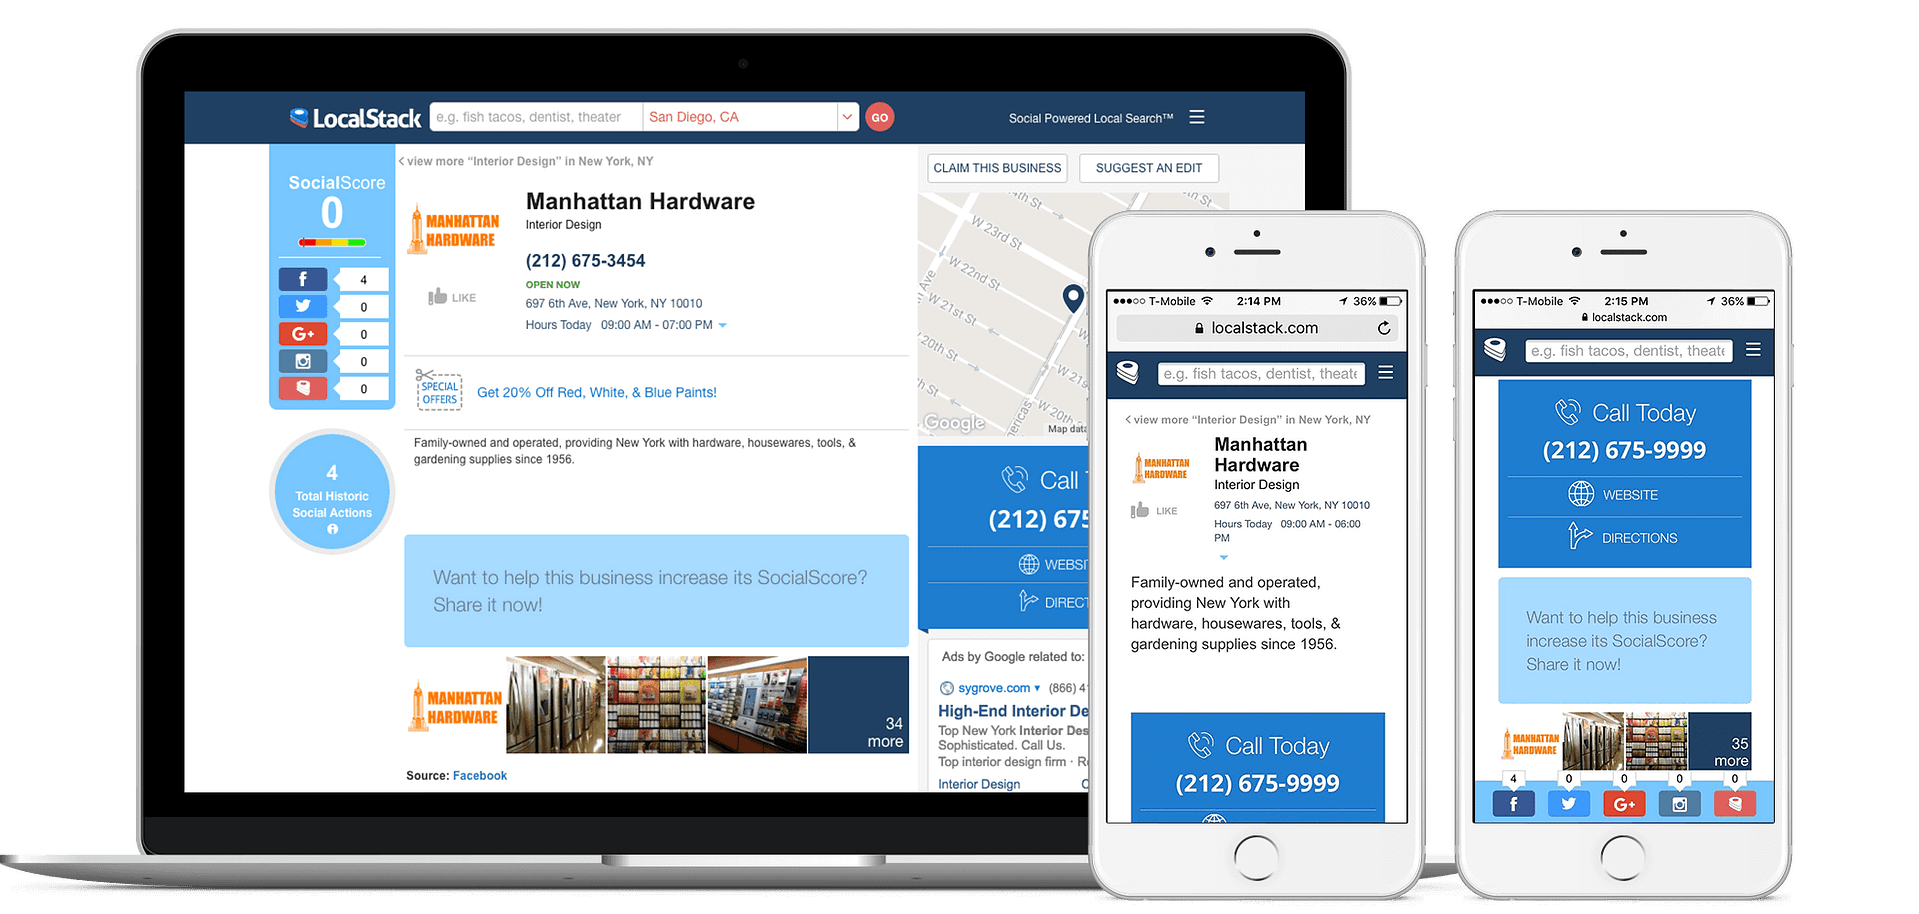 Add Your Business to LocalStack